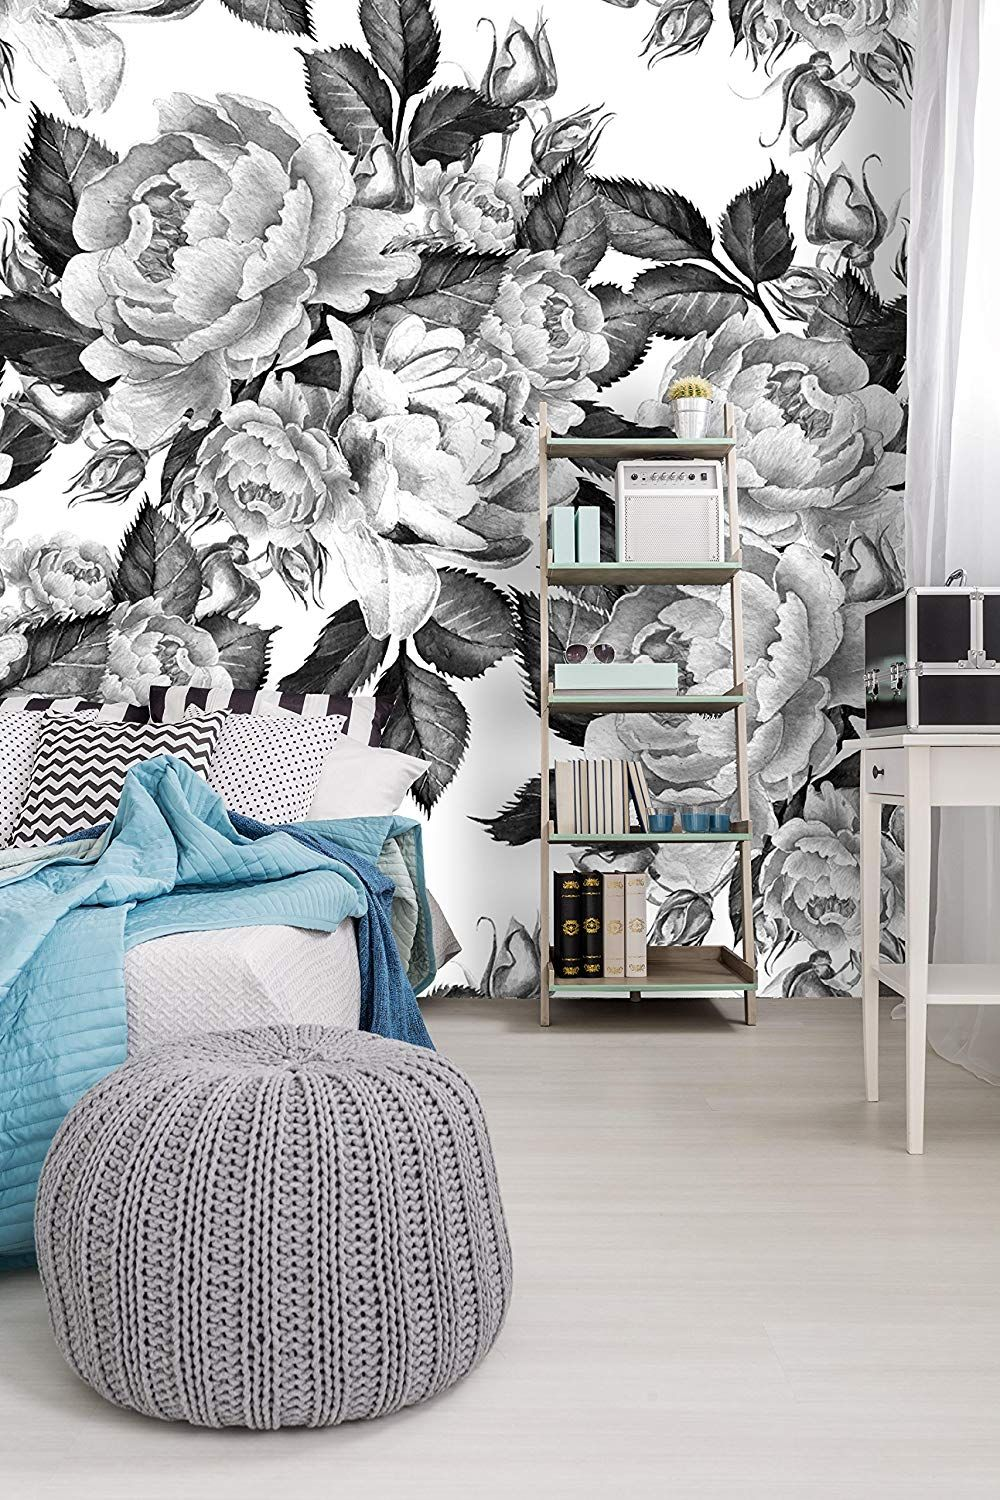 Removable Wallpaper Mural Peel & Stick Peonies